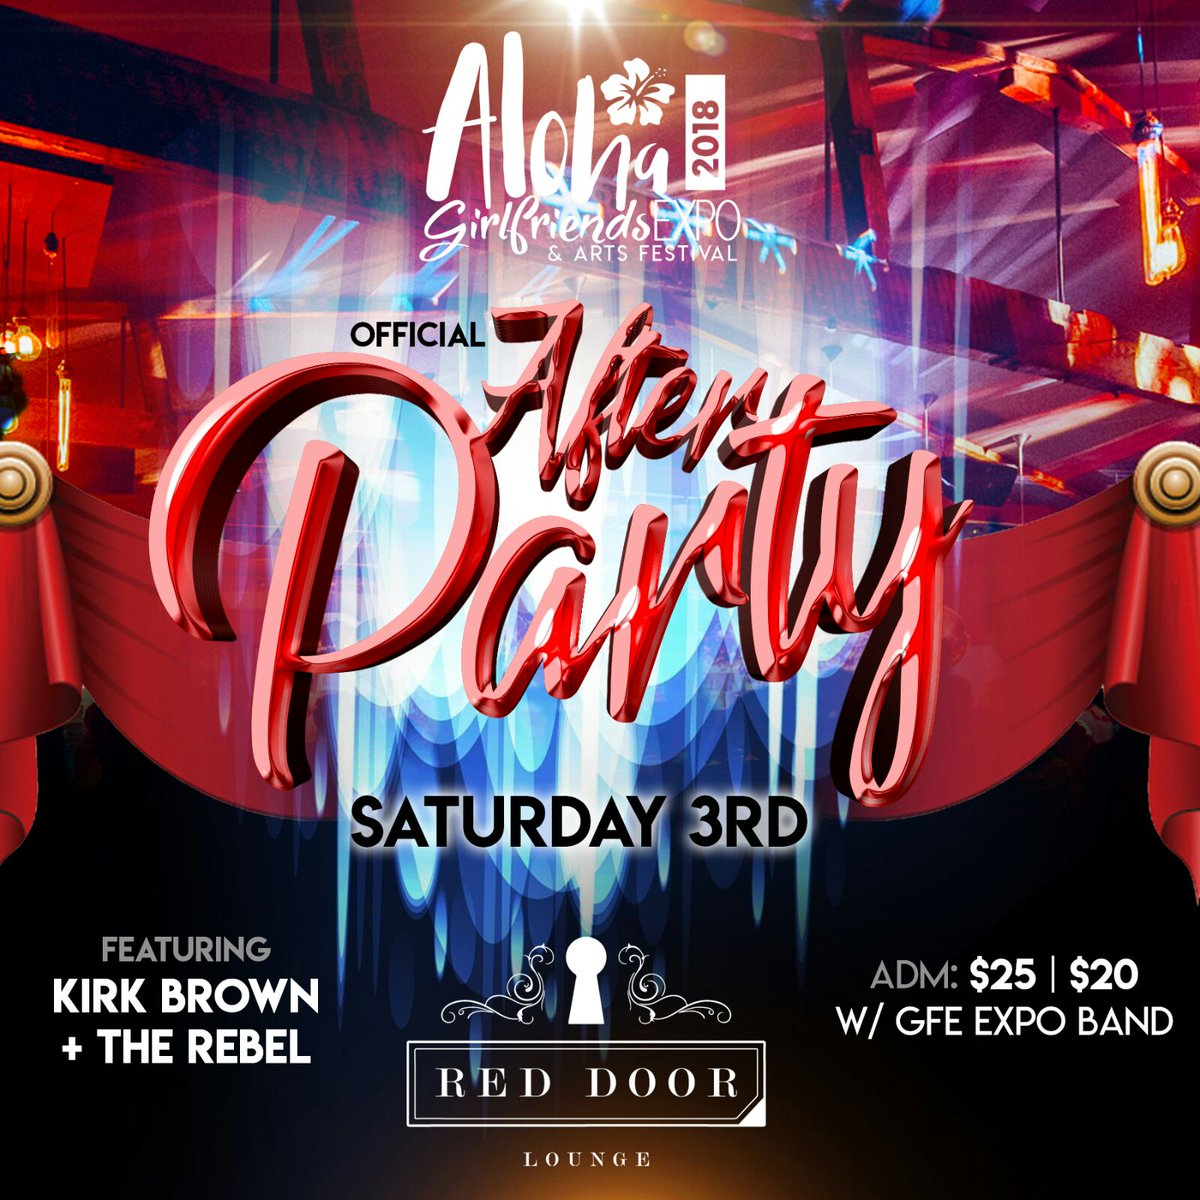 Red Door Lounge On Twitter This Saturday Is The Official After